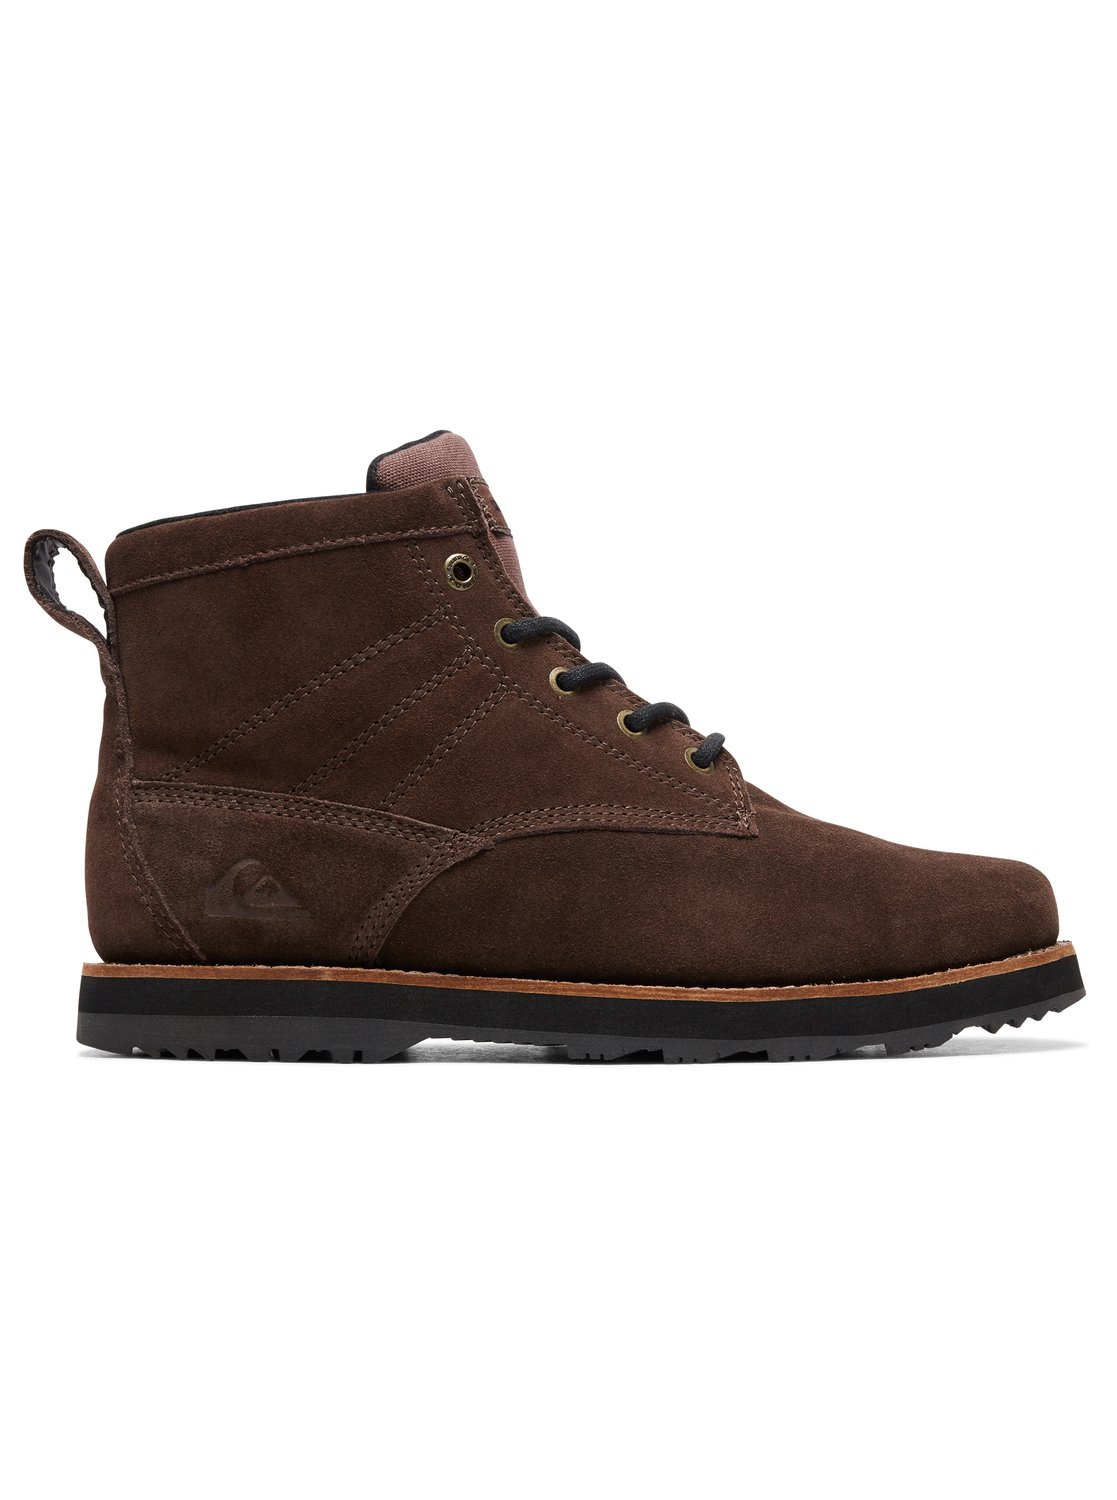 48e087382ce5c 1 Gart - Water-Resistant Lace-Up Boots for Men Brown AQYB700035 Quiksilver